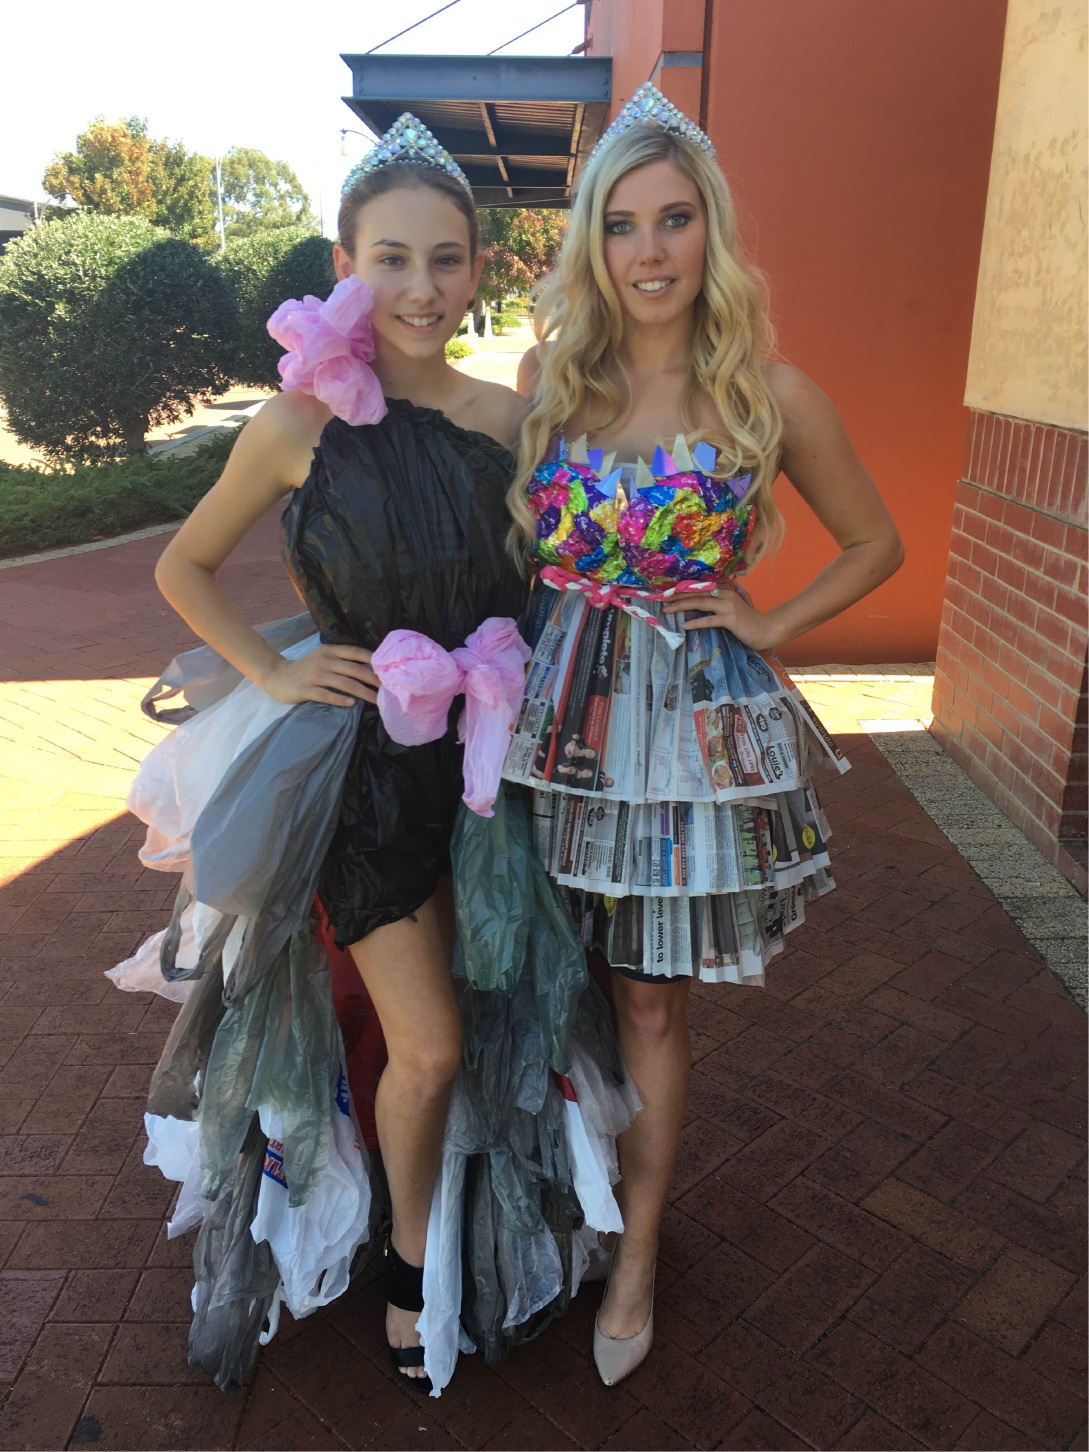 Miss Teen Galaxy Australia contestant Alicia Tavani and Miss Galaxy Australia contestant Elise Nazzari in their 'eco beauty' dresses.